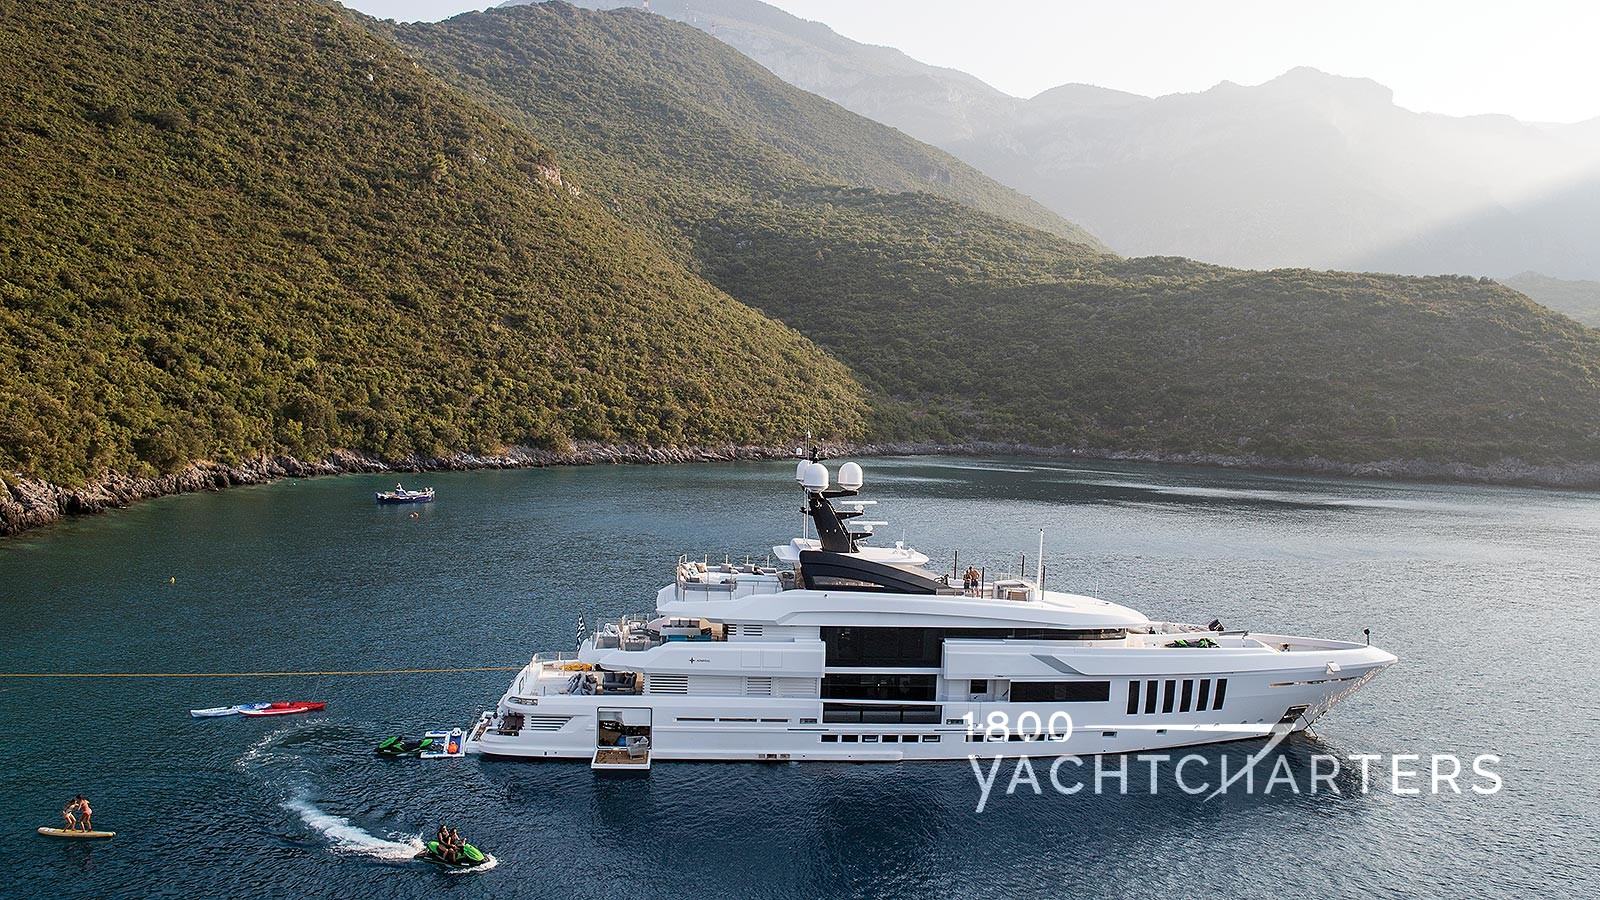 Profile photograph of a yacht at anchor in a quiet harbor.  There are mountains covered in mist in the background. The yacht is facing the right side of the photograph.  There is a jetski zipping around in the water at the back of the yacht.